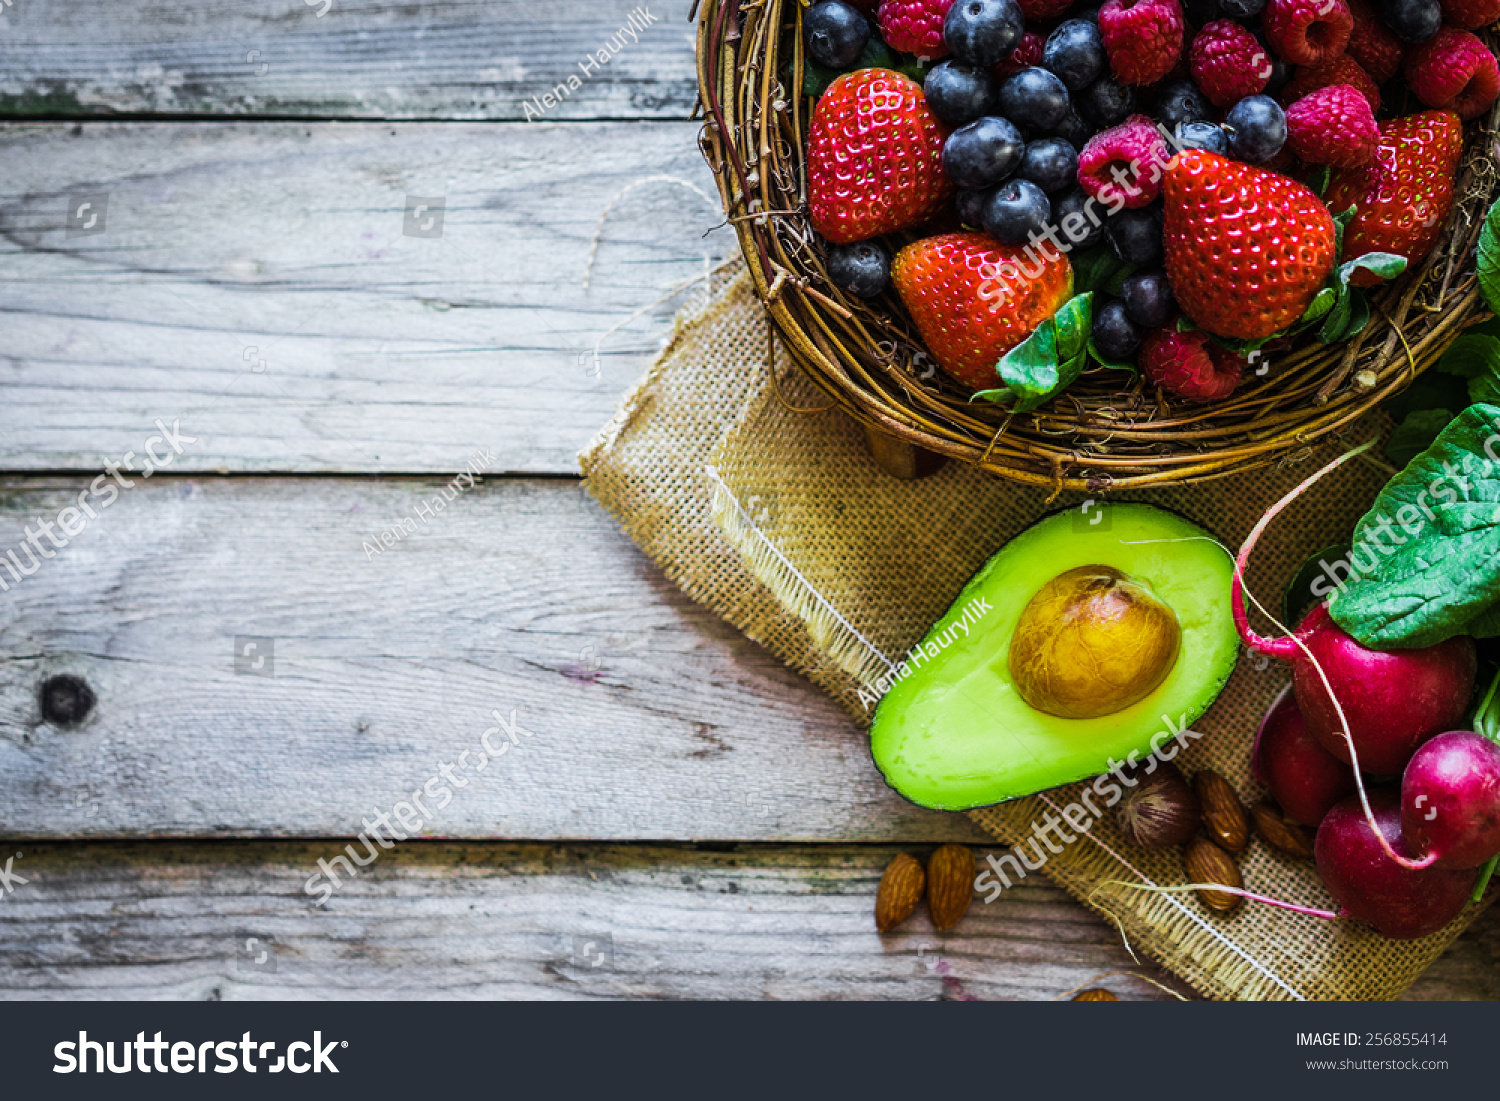 Fruits And Vegetables On Rustic Background Stock Photo ...